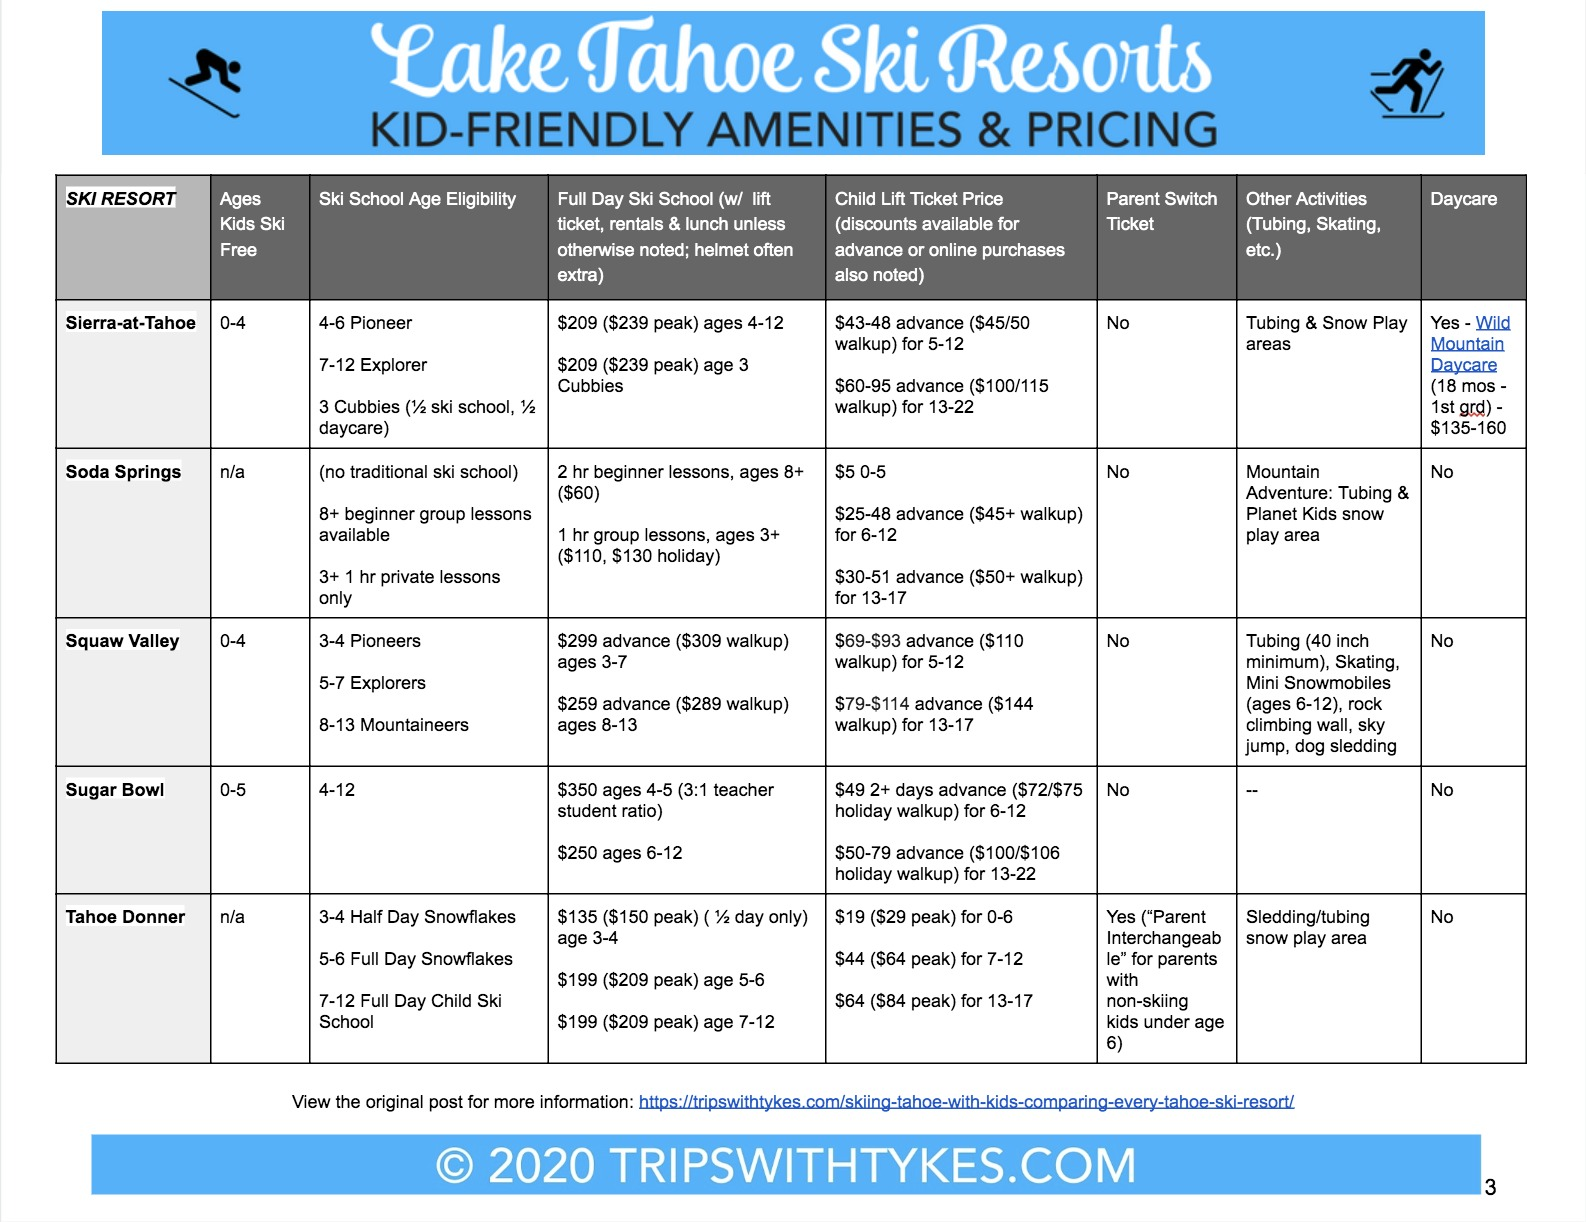 Lake Tahoe Ski Resort Comparison Guide 2020 Page 3